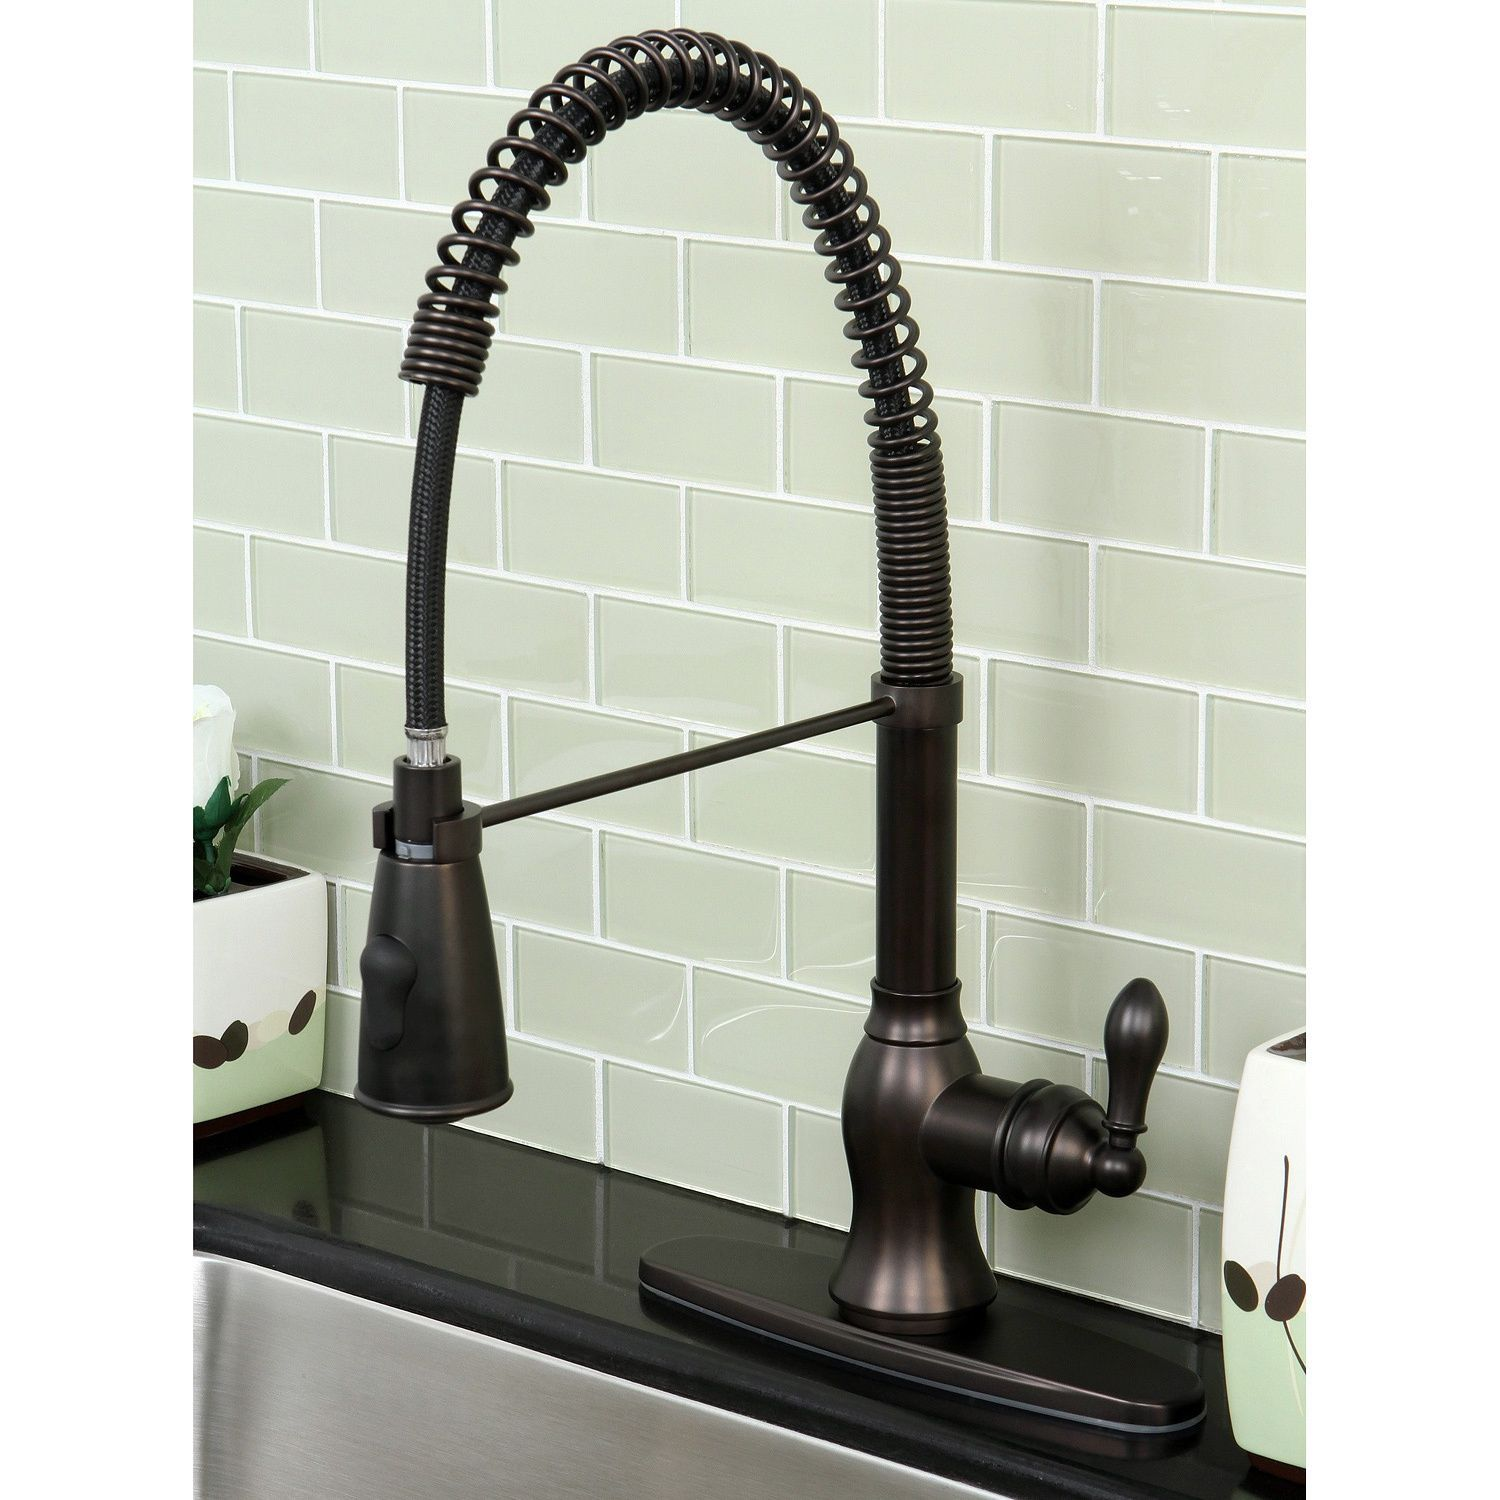 oil rubbed bronze pull down kitchen faucet antique islands kingston brass american classic modern